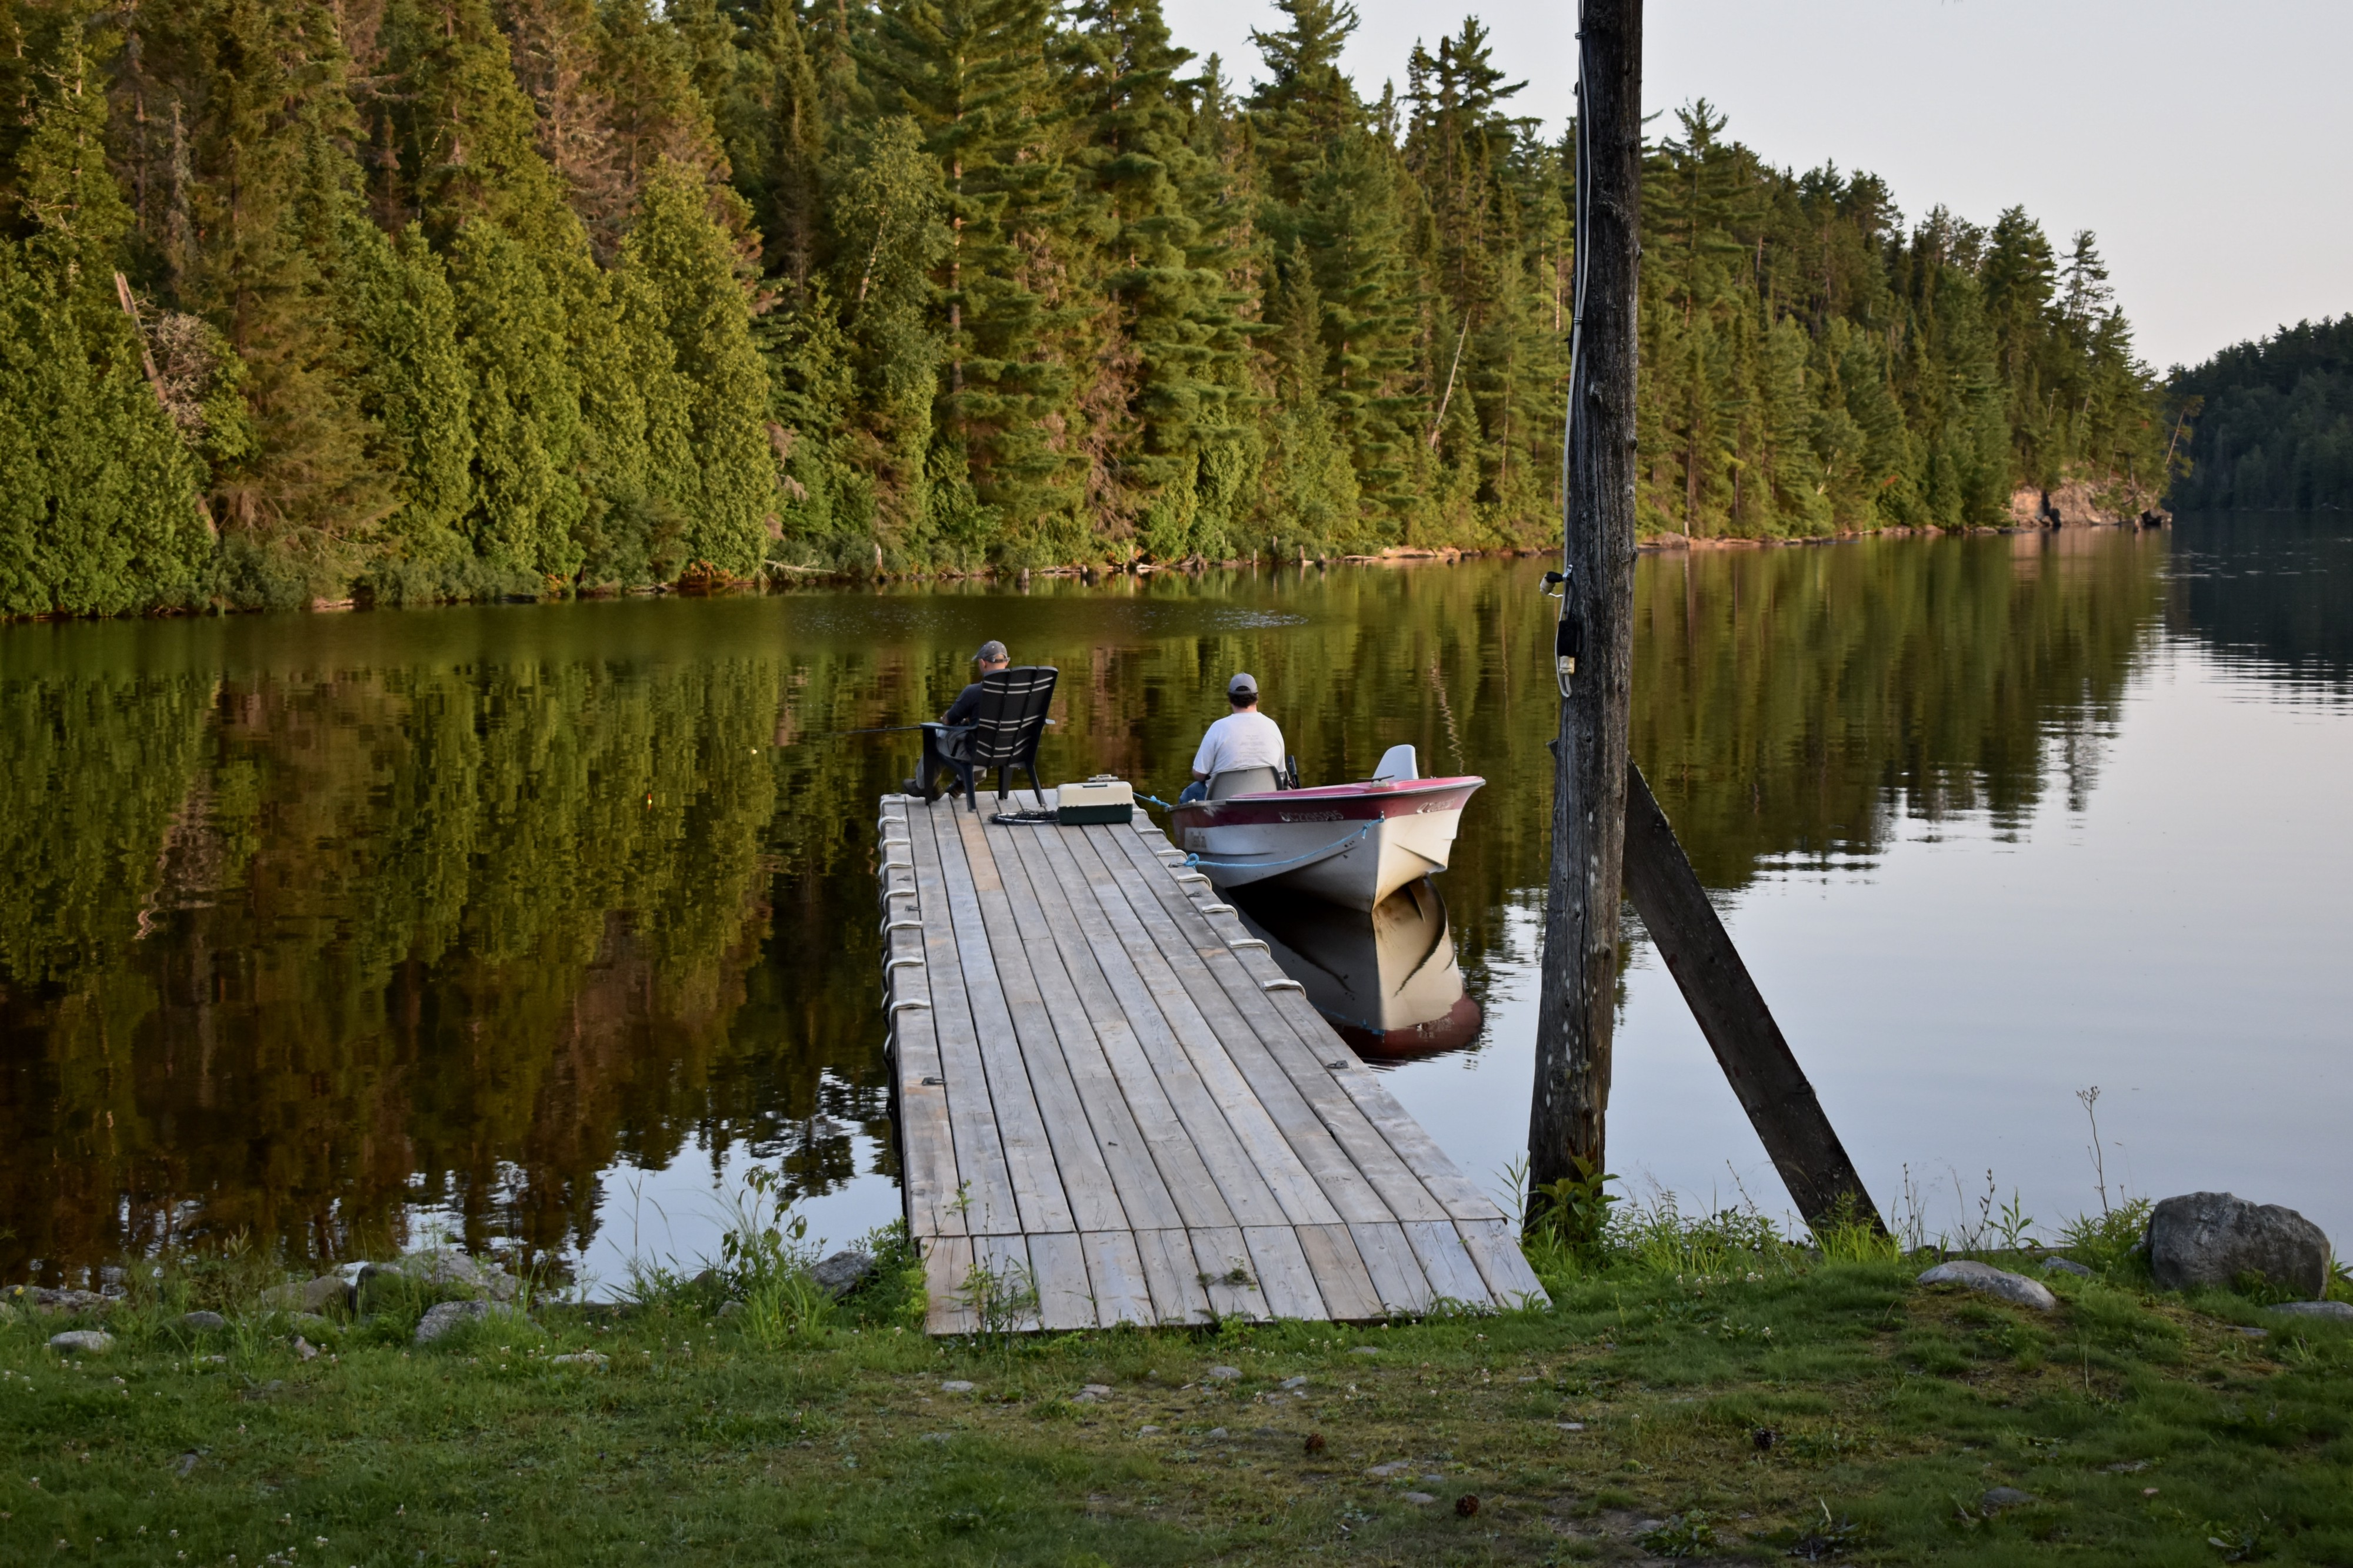 Two men fishing from the end of a dock, with a wall of conifer trees in the background.